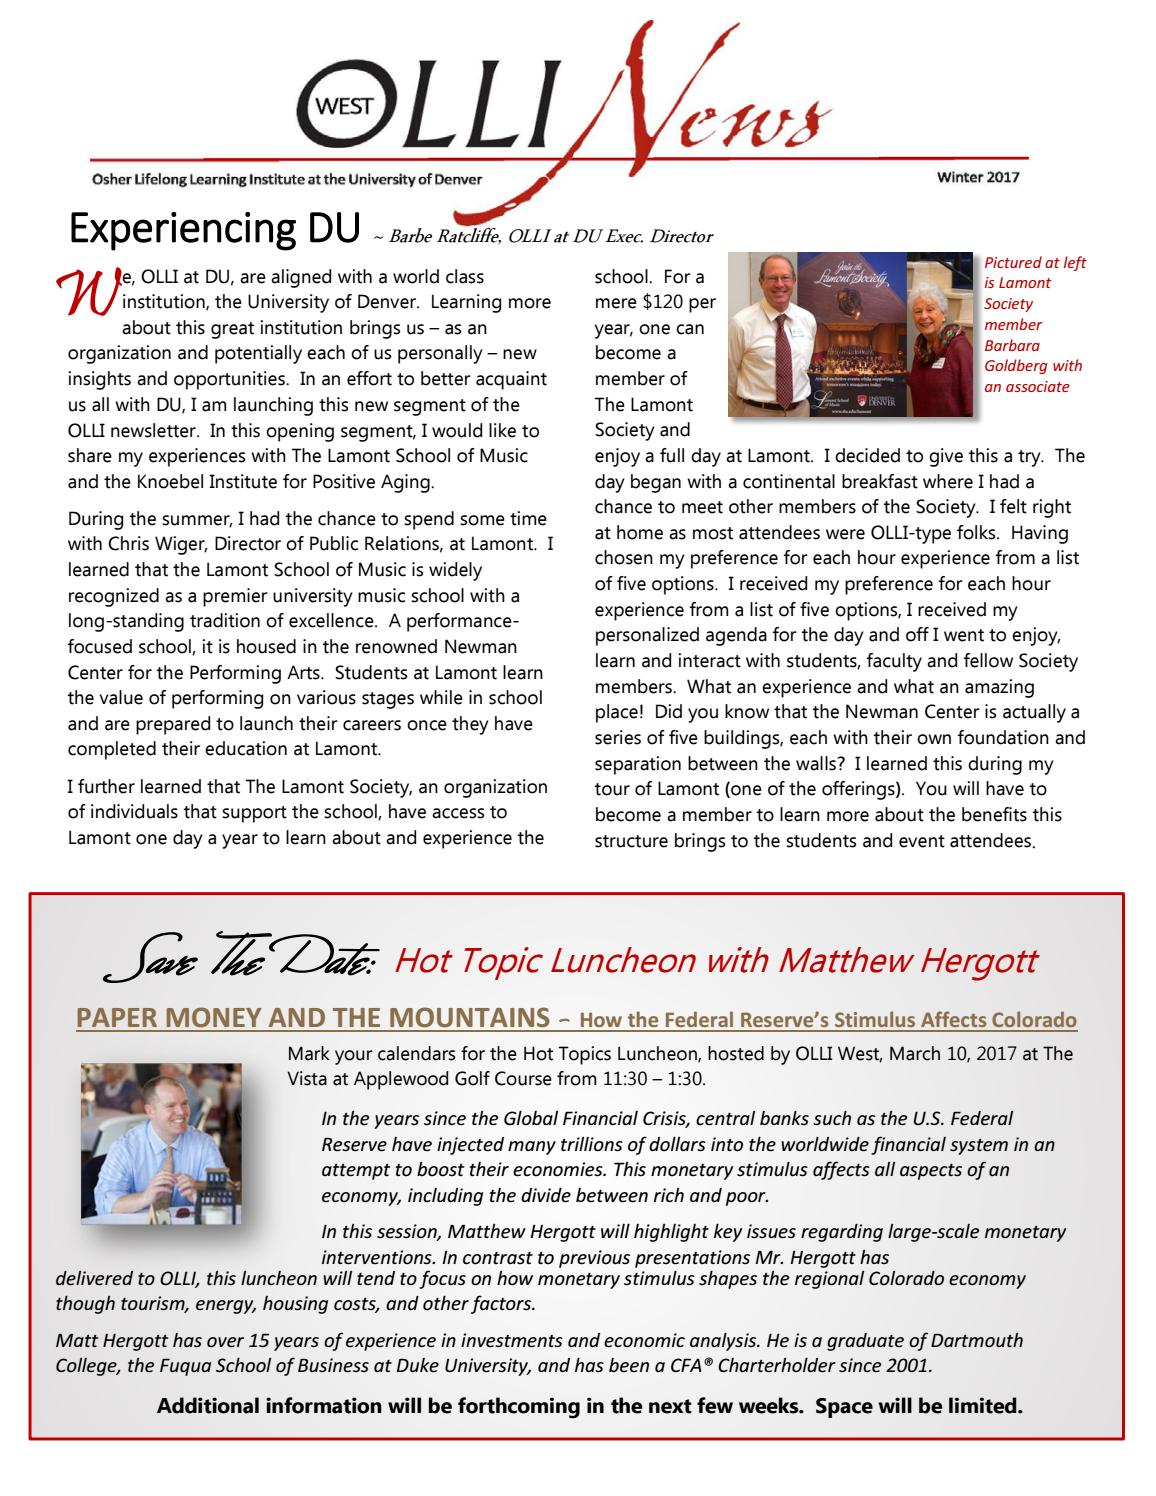 olli west winter newsletter by olli at du issuu